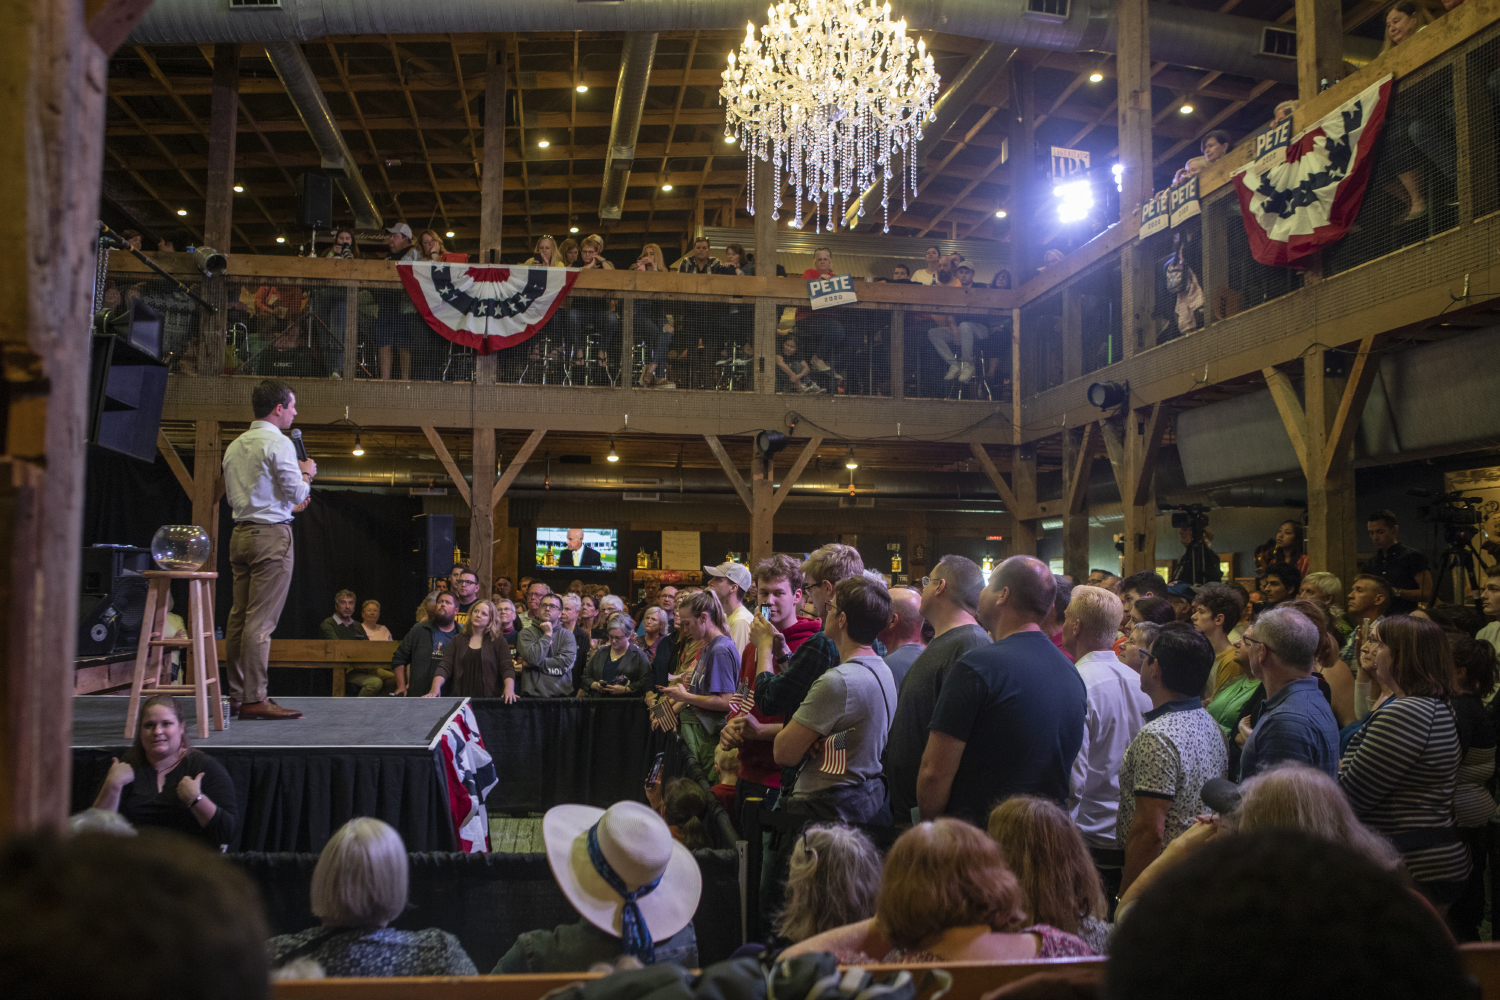 2020+Democratic+presidential-nomination+candidate+Pete+Buttigieg+speaks+during+the+town+hall+at+the+Wildwood+Smokehouse+%26+Saloon+on+May+18%2C+2019.+The+Iowa+City+event+marked+the+third+of+four+Iowa+campaign+stops+for+Buttigieg+this+weekend.